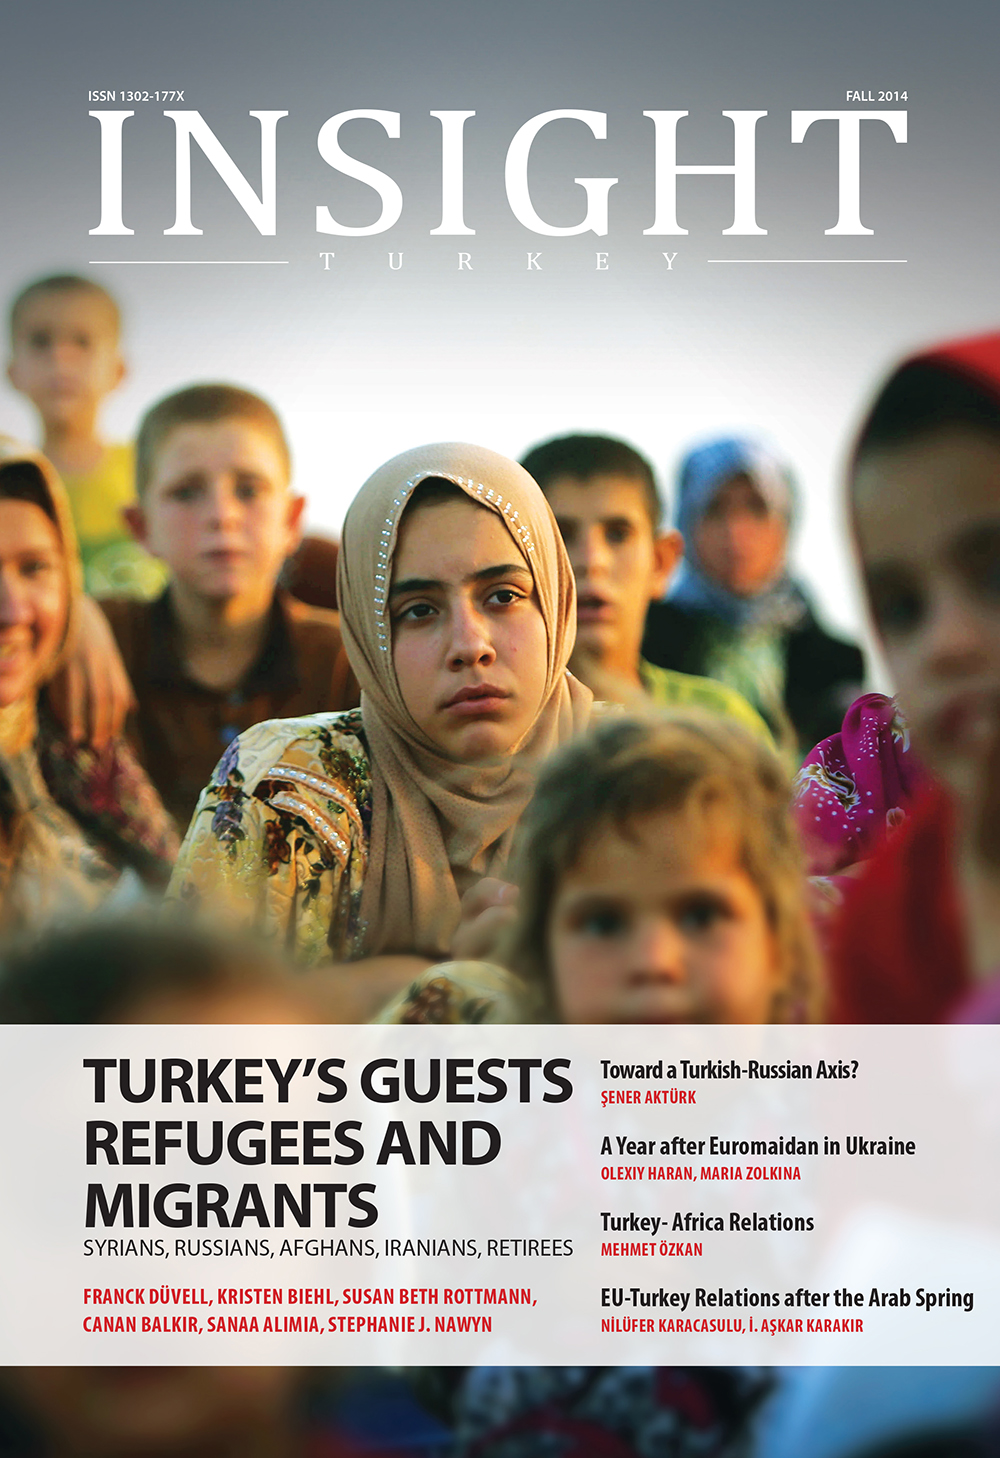 Turkey's Guests Refugees and Migrants